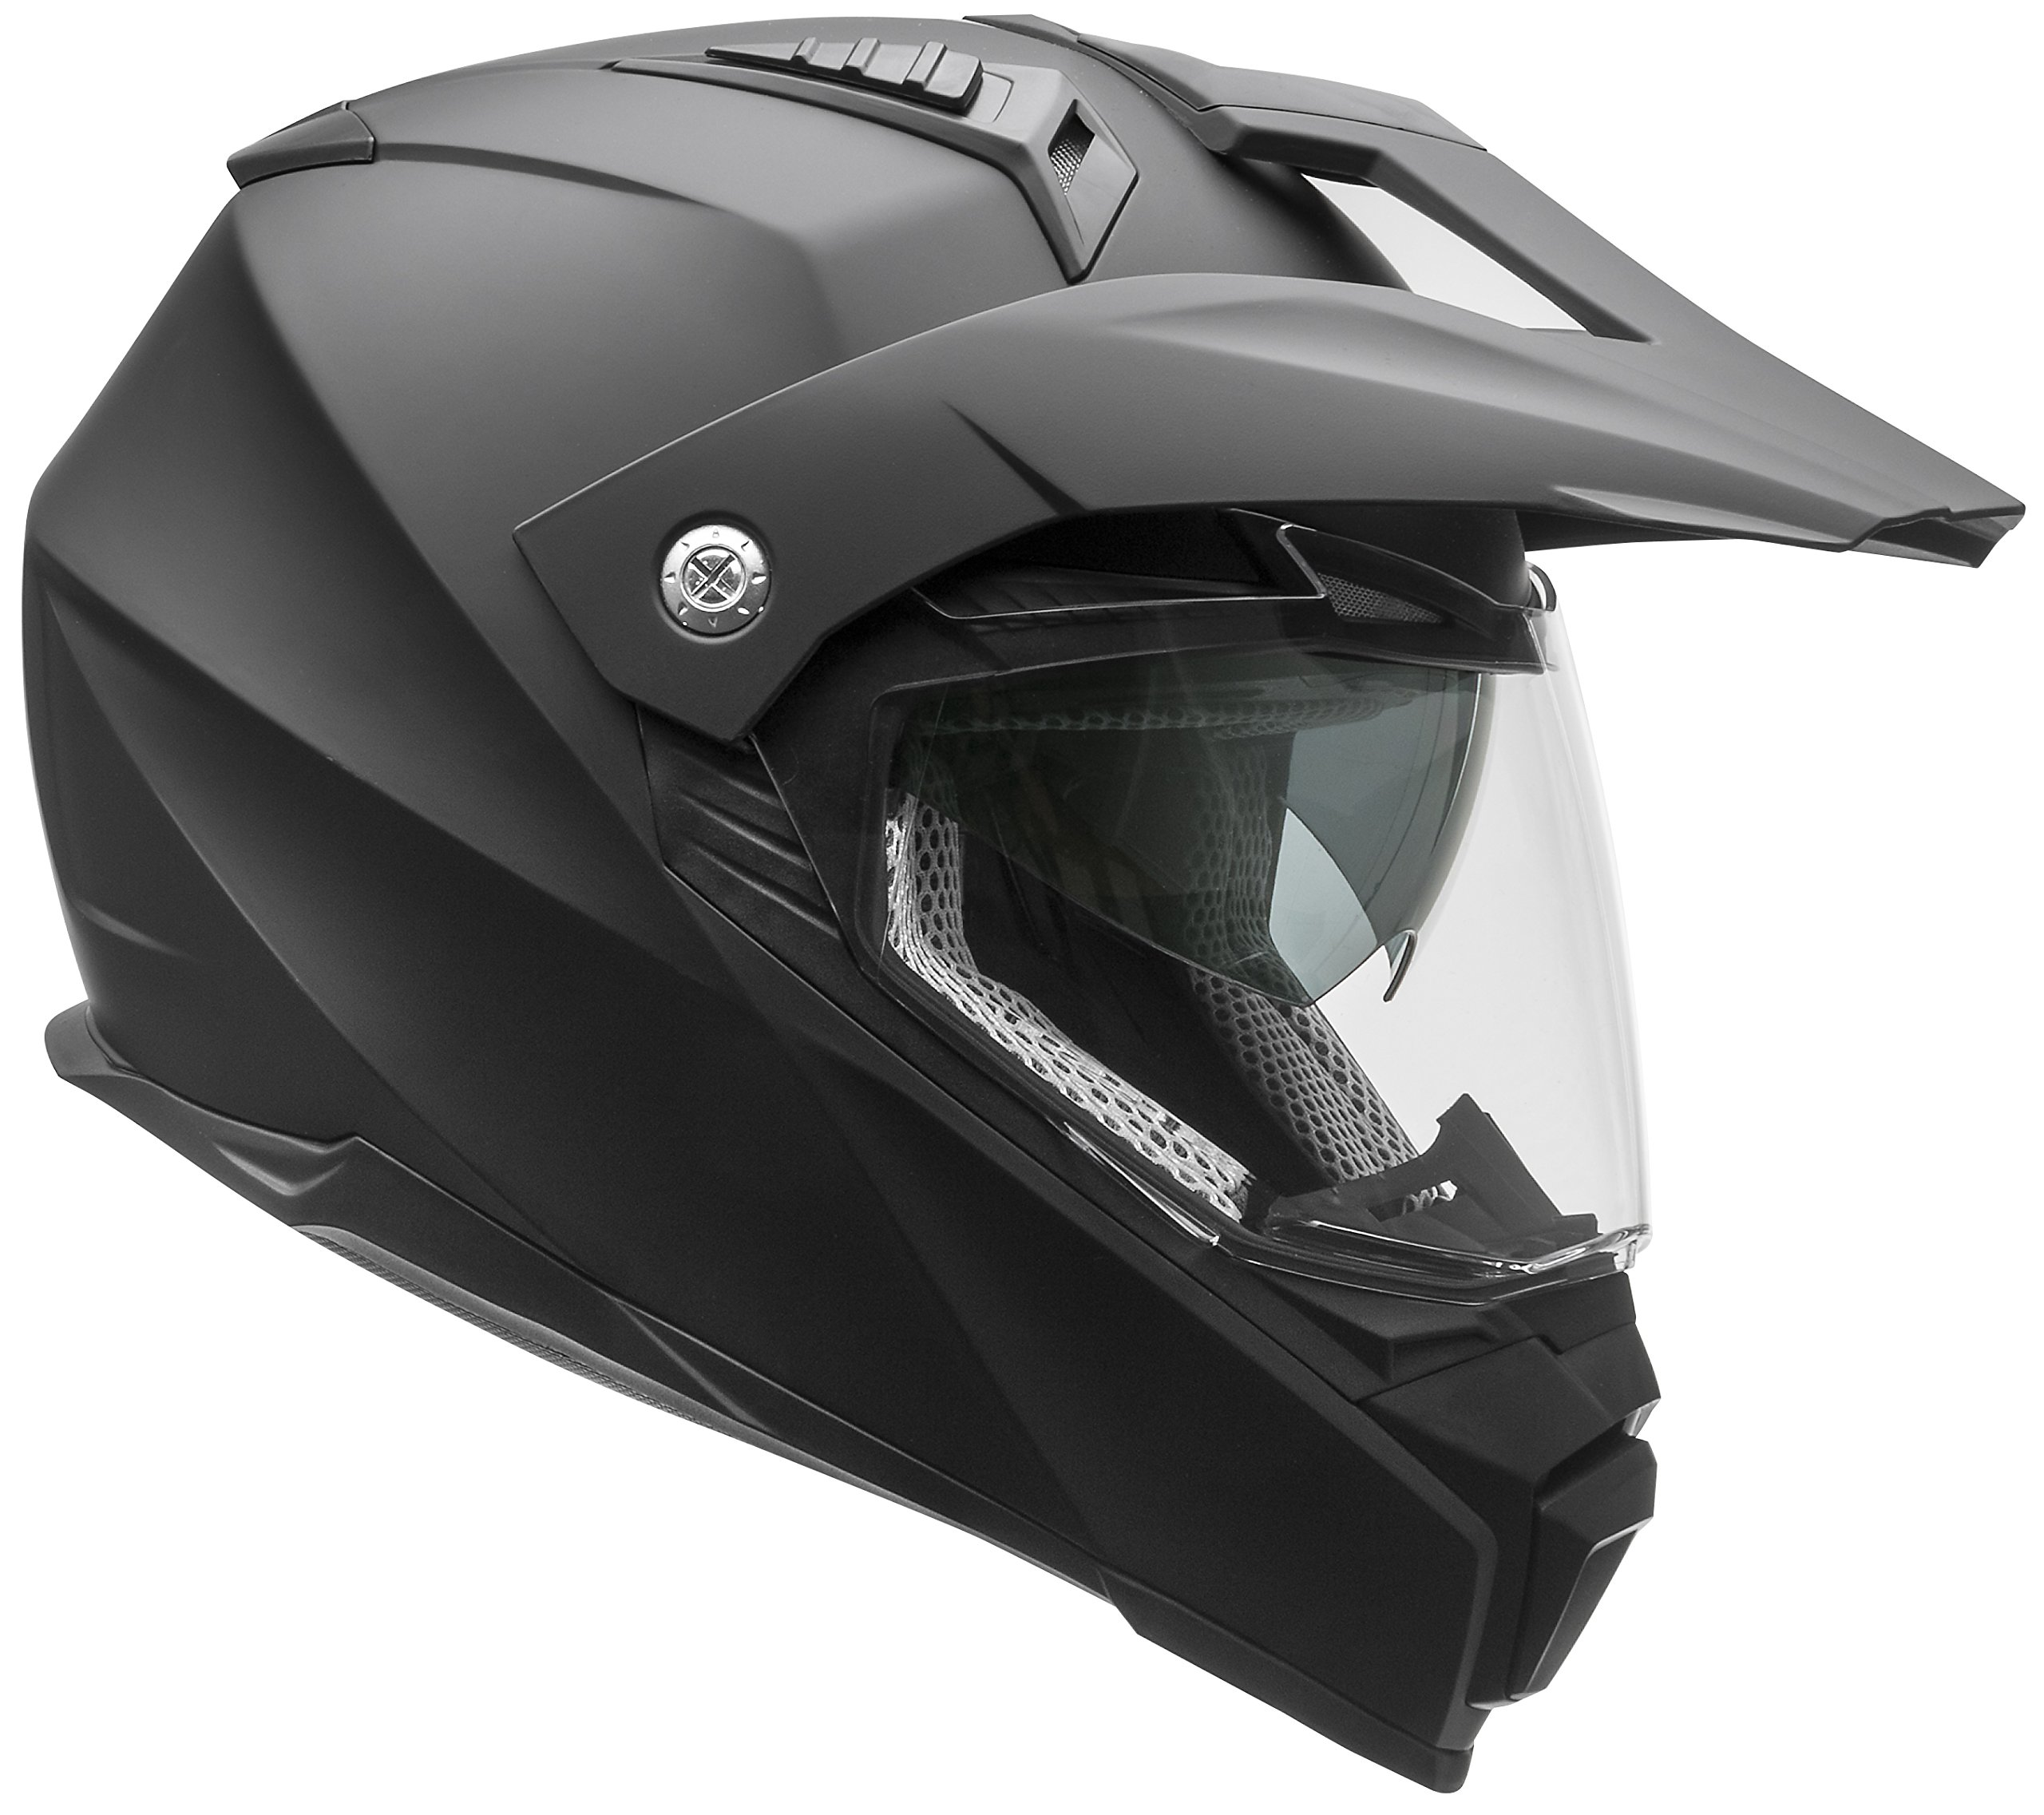 Vega Helmets Cross Tour 2 Dual Sport Helmet with Internal Sun Visor – Full Face Motorcycle Helmet for Motocross ATV MX Enduro Quad, 5 Year Warranty (Matte Black, X-Large)